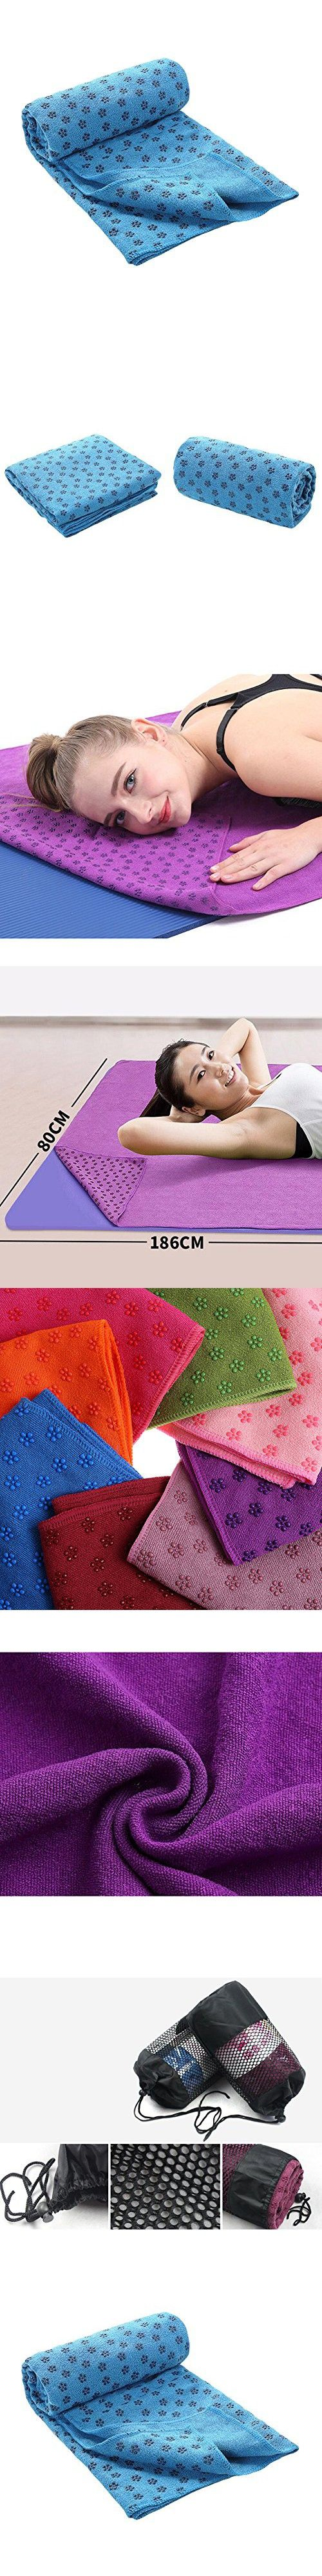 WANGQIANG Yoga Mat Towels Non Slip PVC Resin Particles With Carry Bag Machine Washable